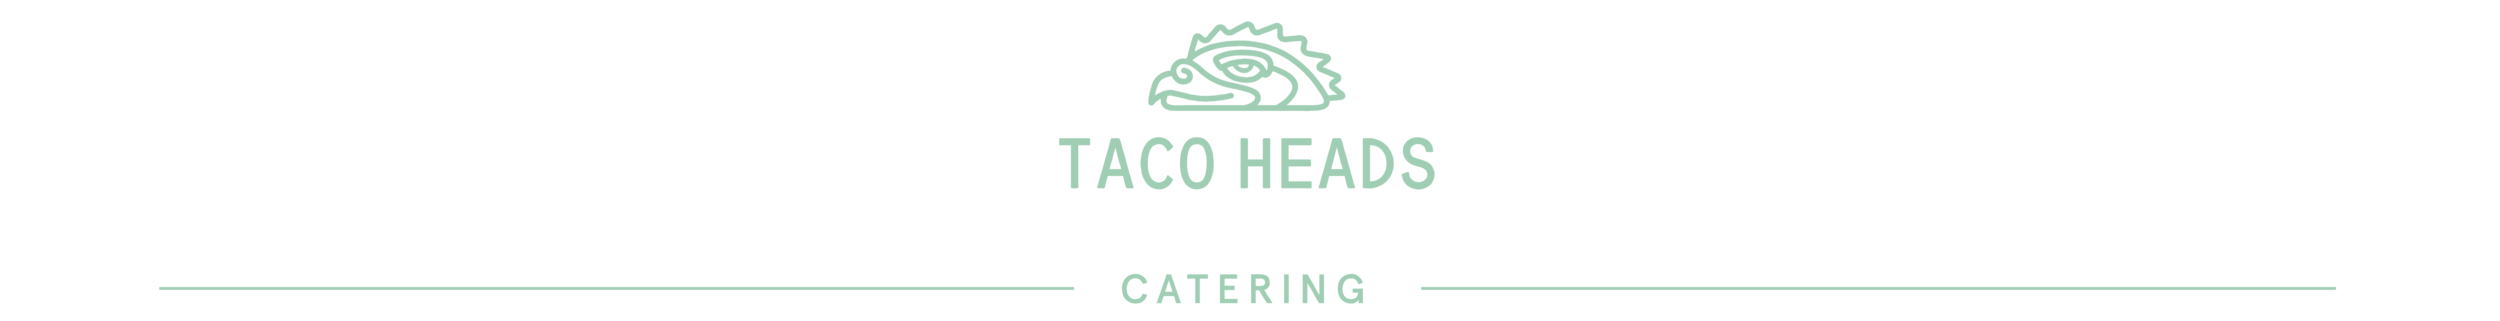 taco heads catering 2.png